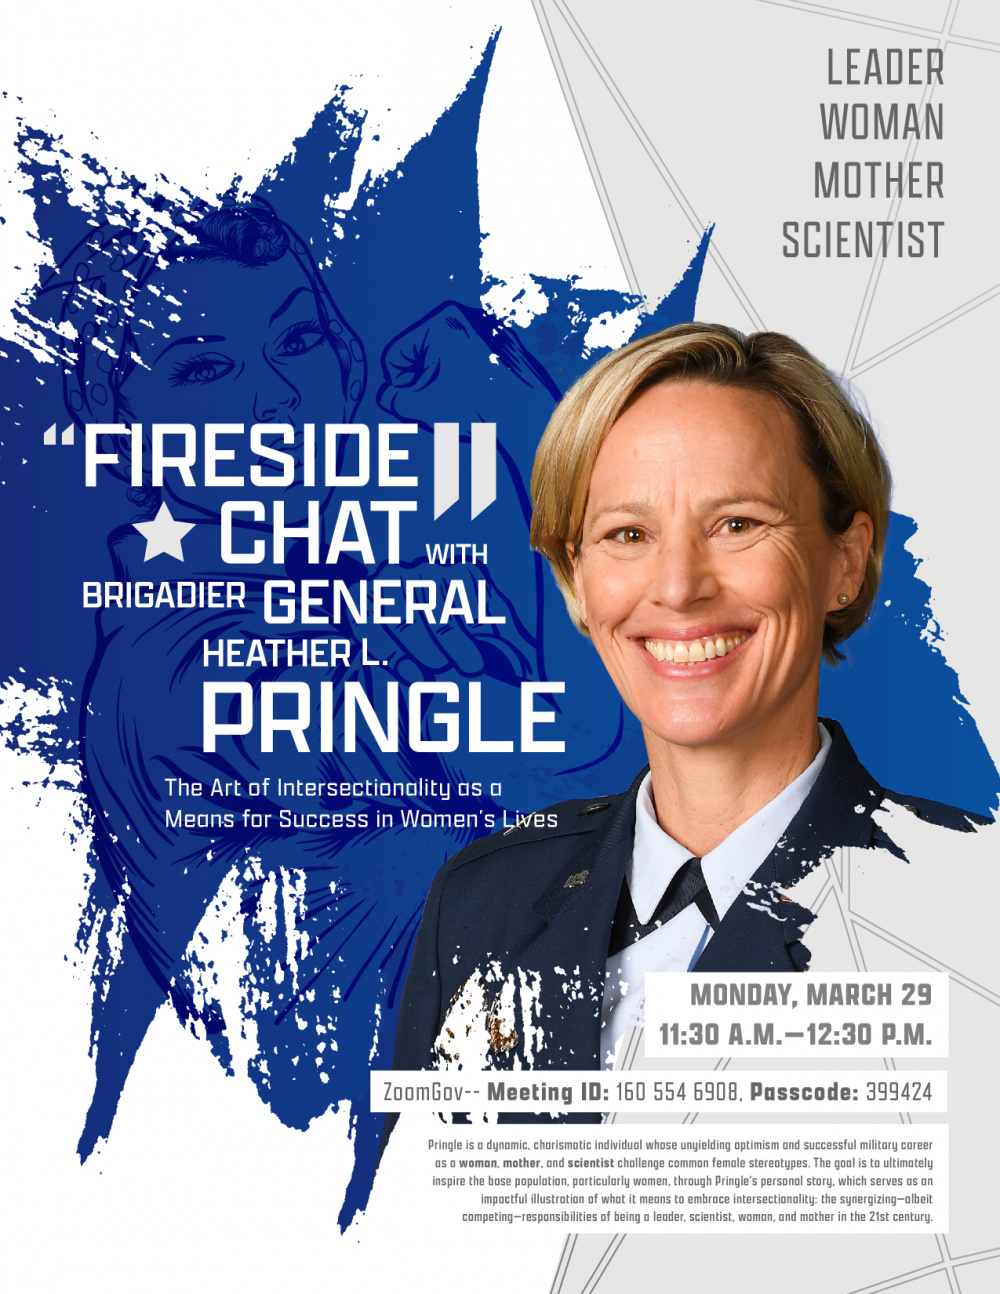 Fireside Chat with Brigadier General Heather L. Pringle